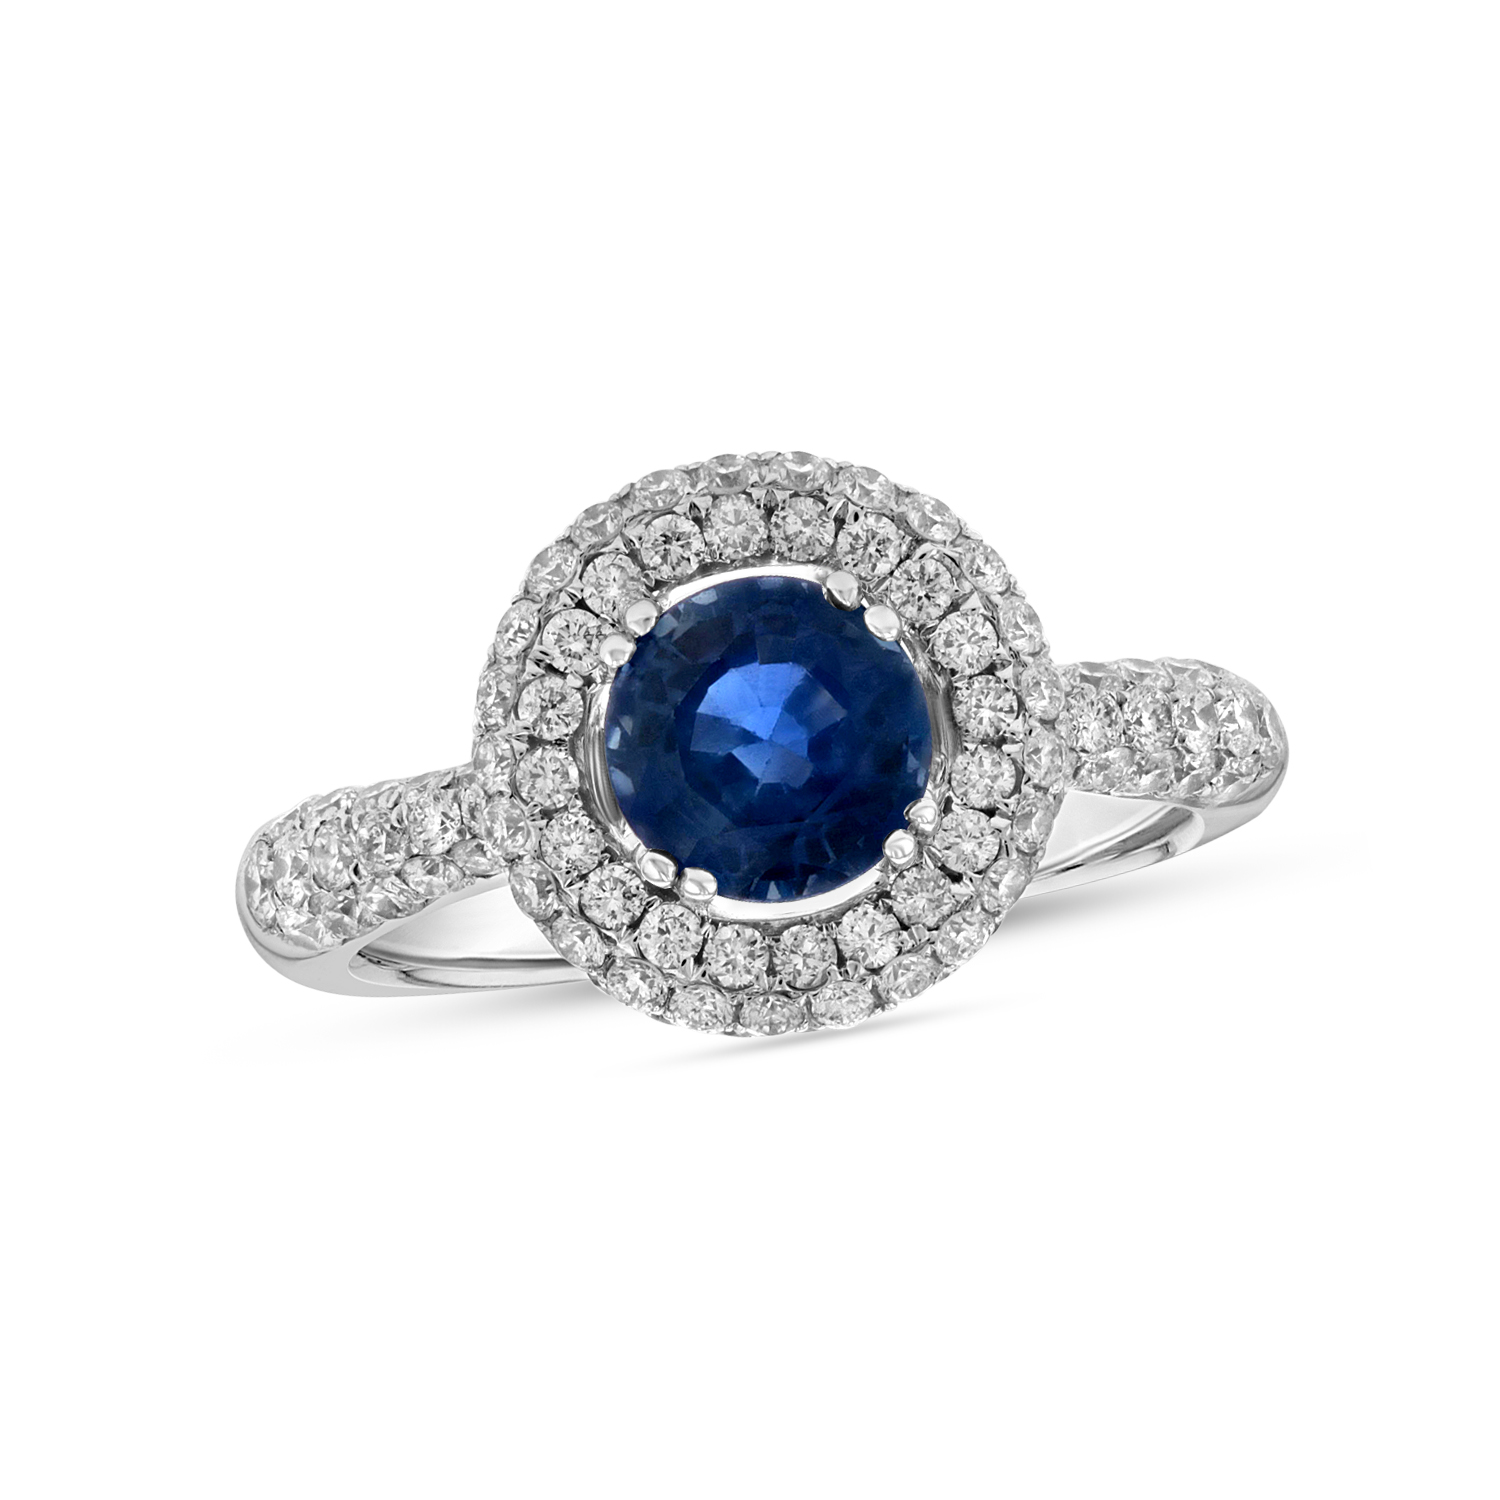 View 2.10cttw Sapphire and Diamond Engagement Ring in 18k White Gold